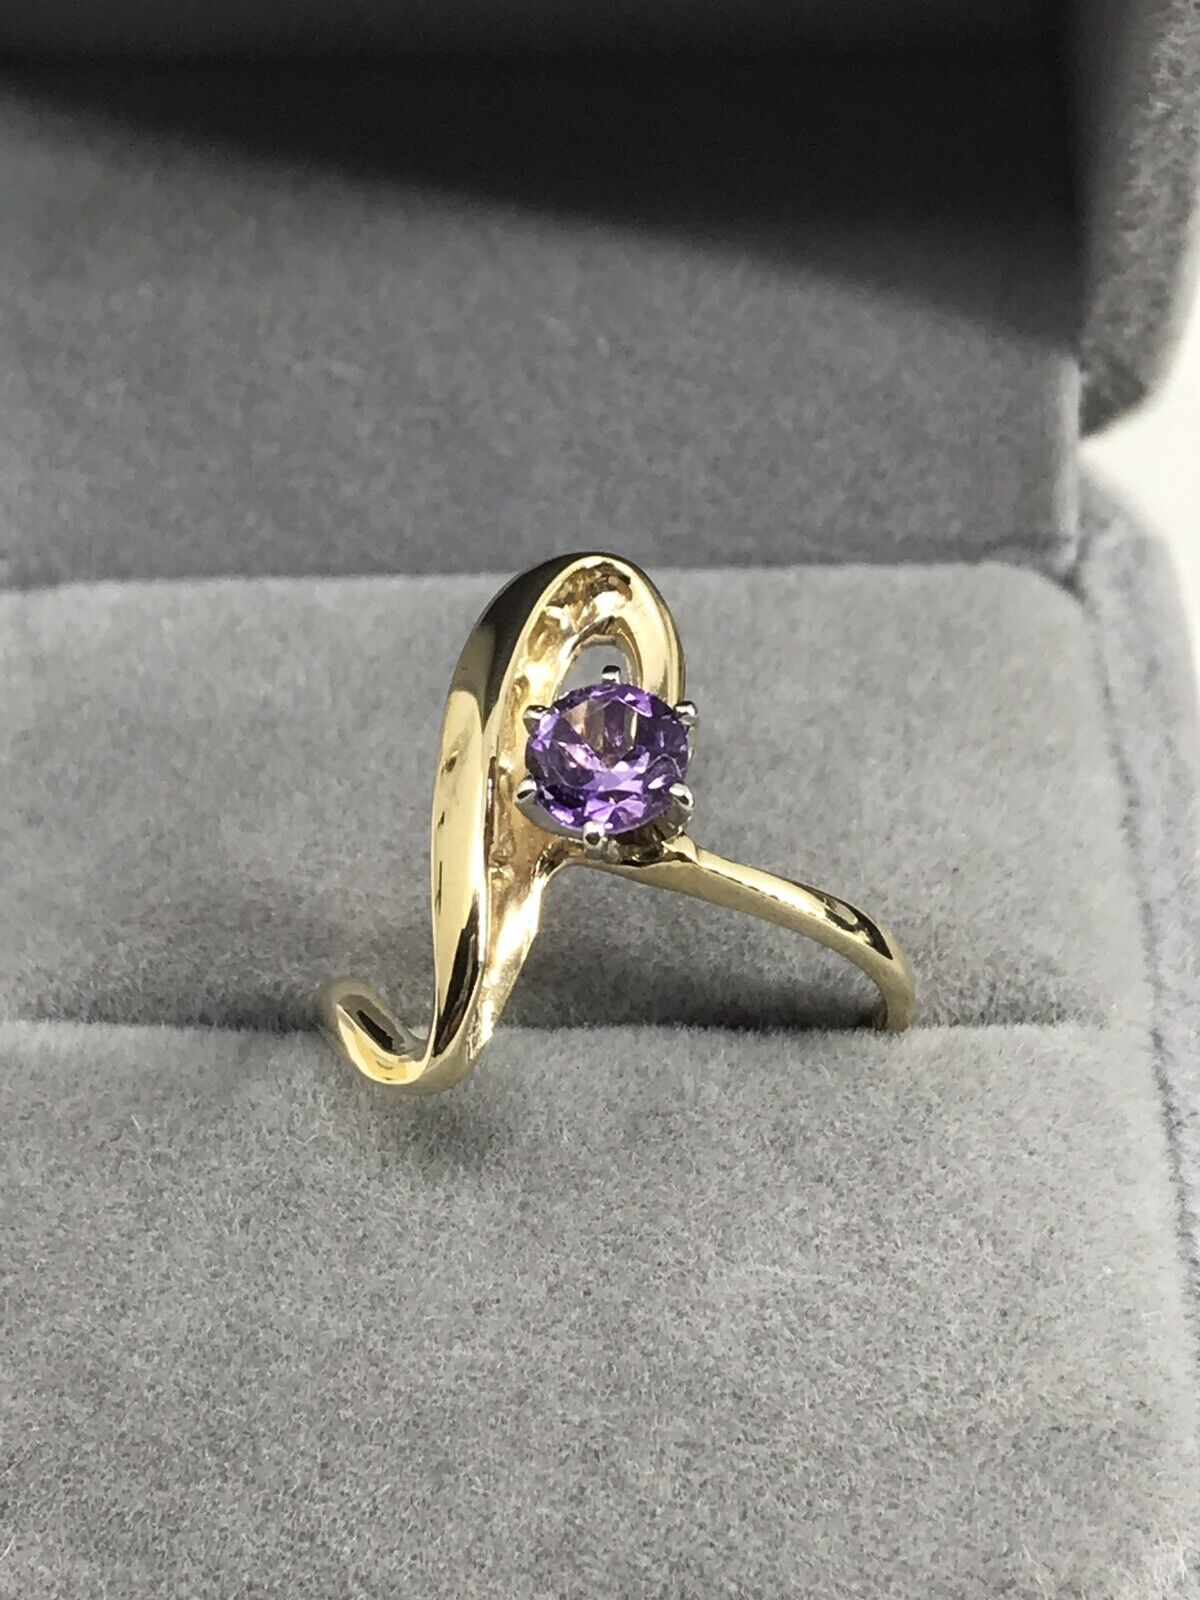 10k Yellow gold Amethyst Women's Ring size 7.5. Unique